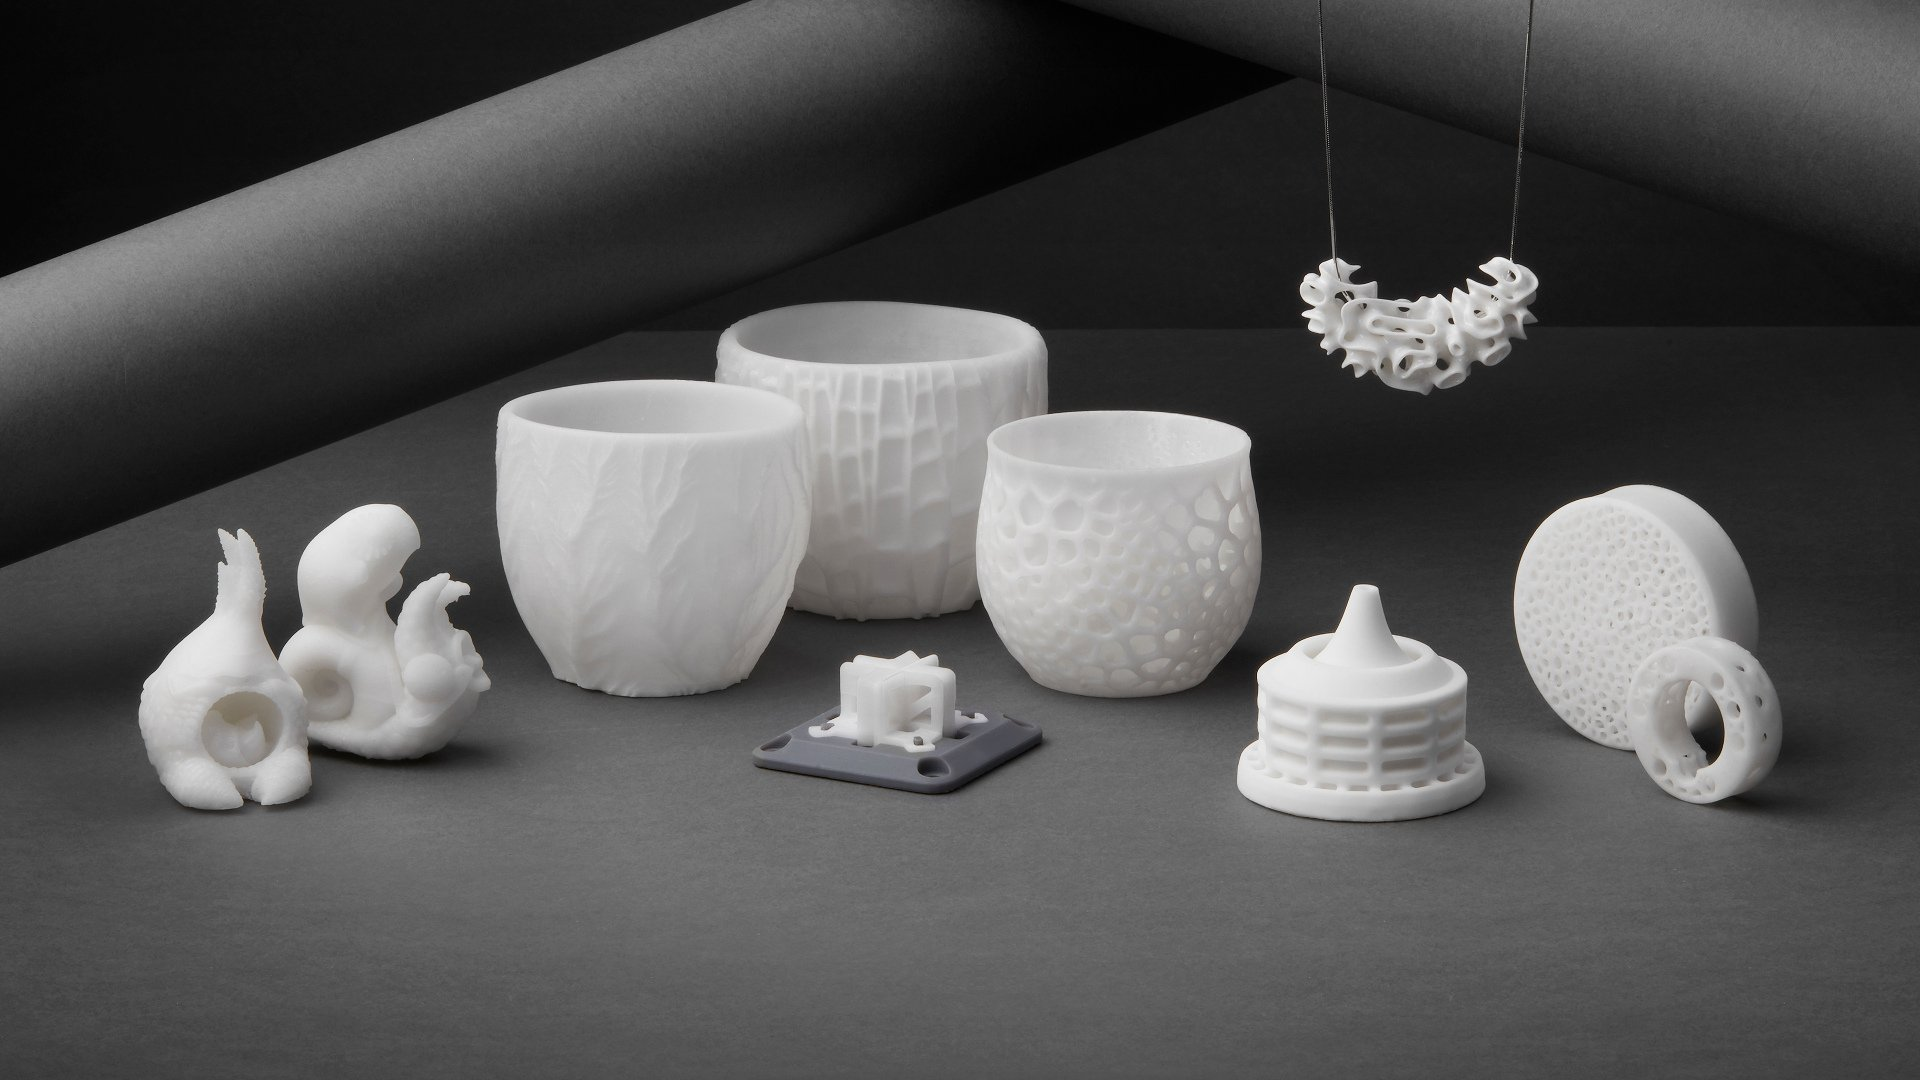 Experimental Ceramic Resin for the Form 2 Now Available | All3DP